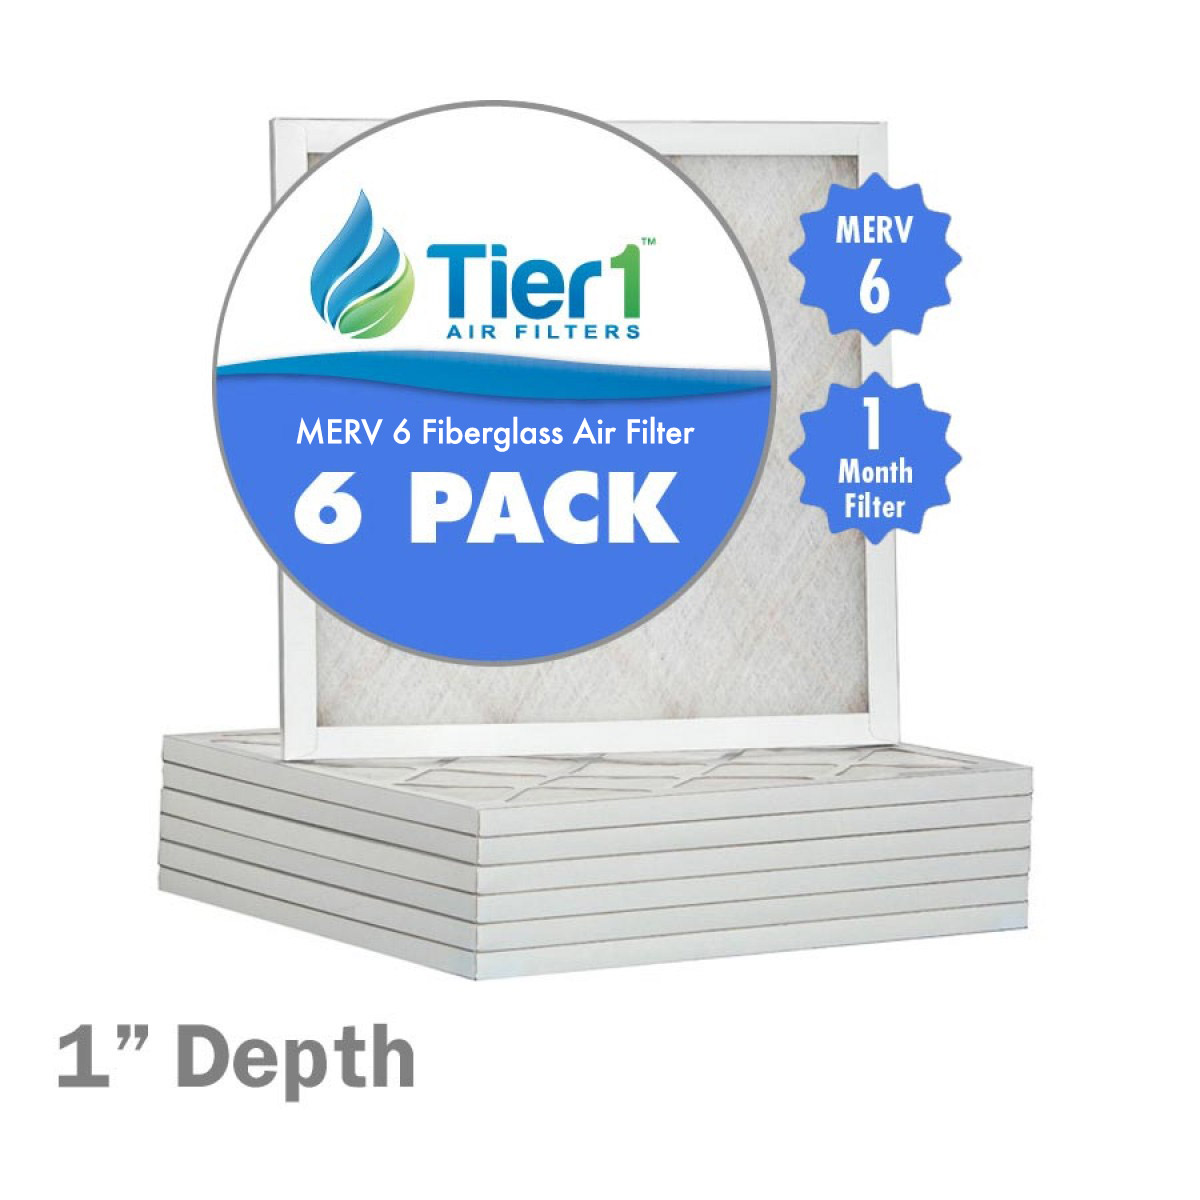 Tier1 14x20x1 MERV 6 Fiberglass Air Filter (6-Pack) PartNumber: SPM8012055902